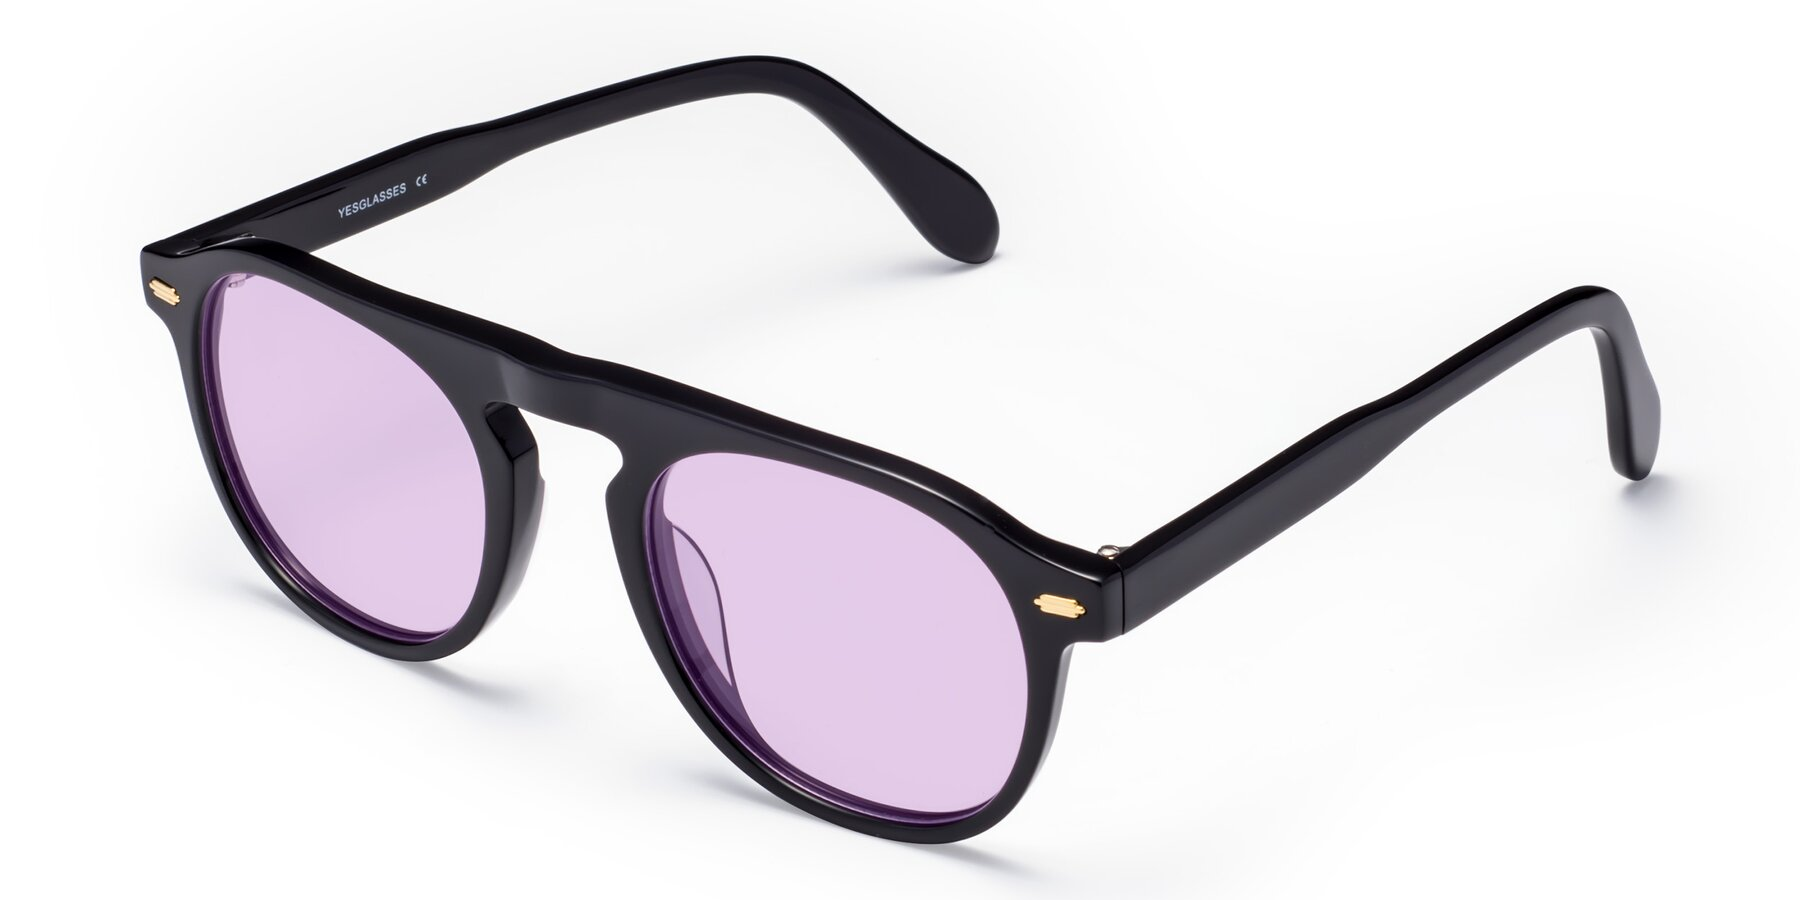 Angle of Mufasa in Black with Light Purple Tinted Lenses